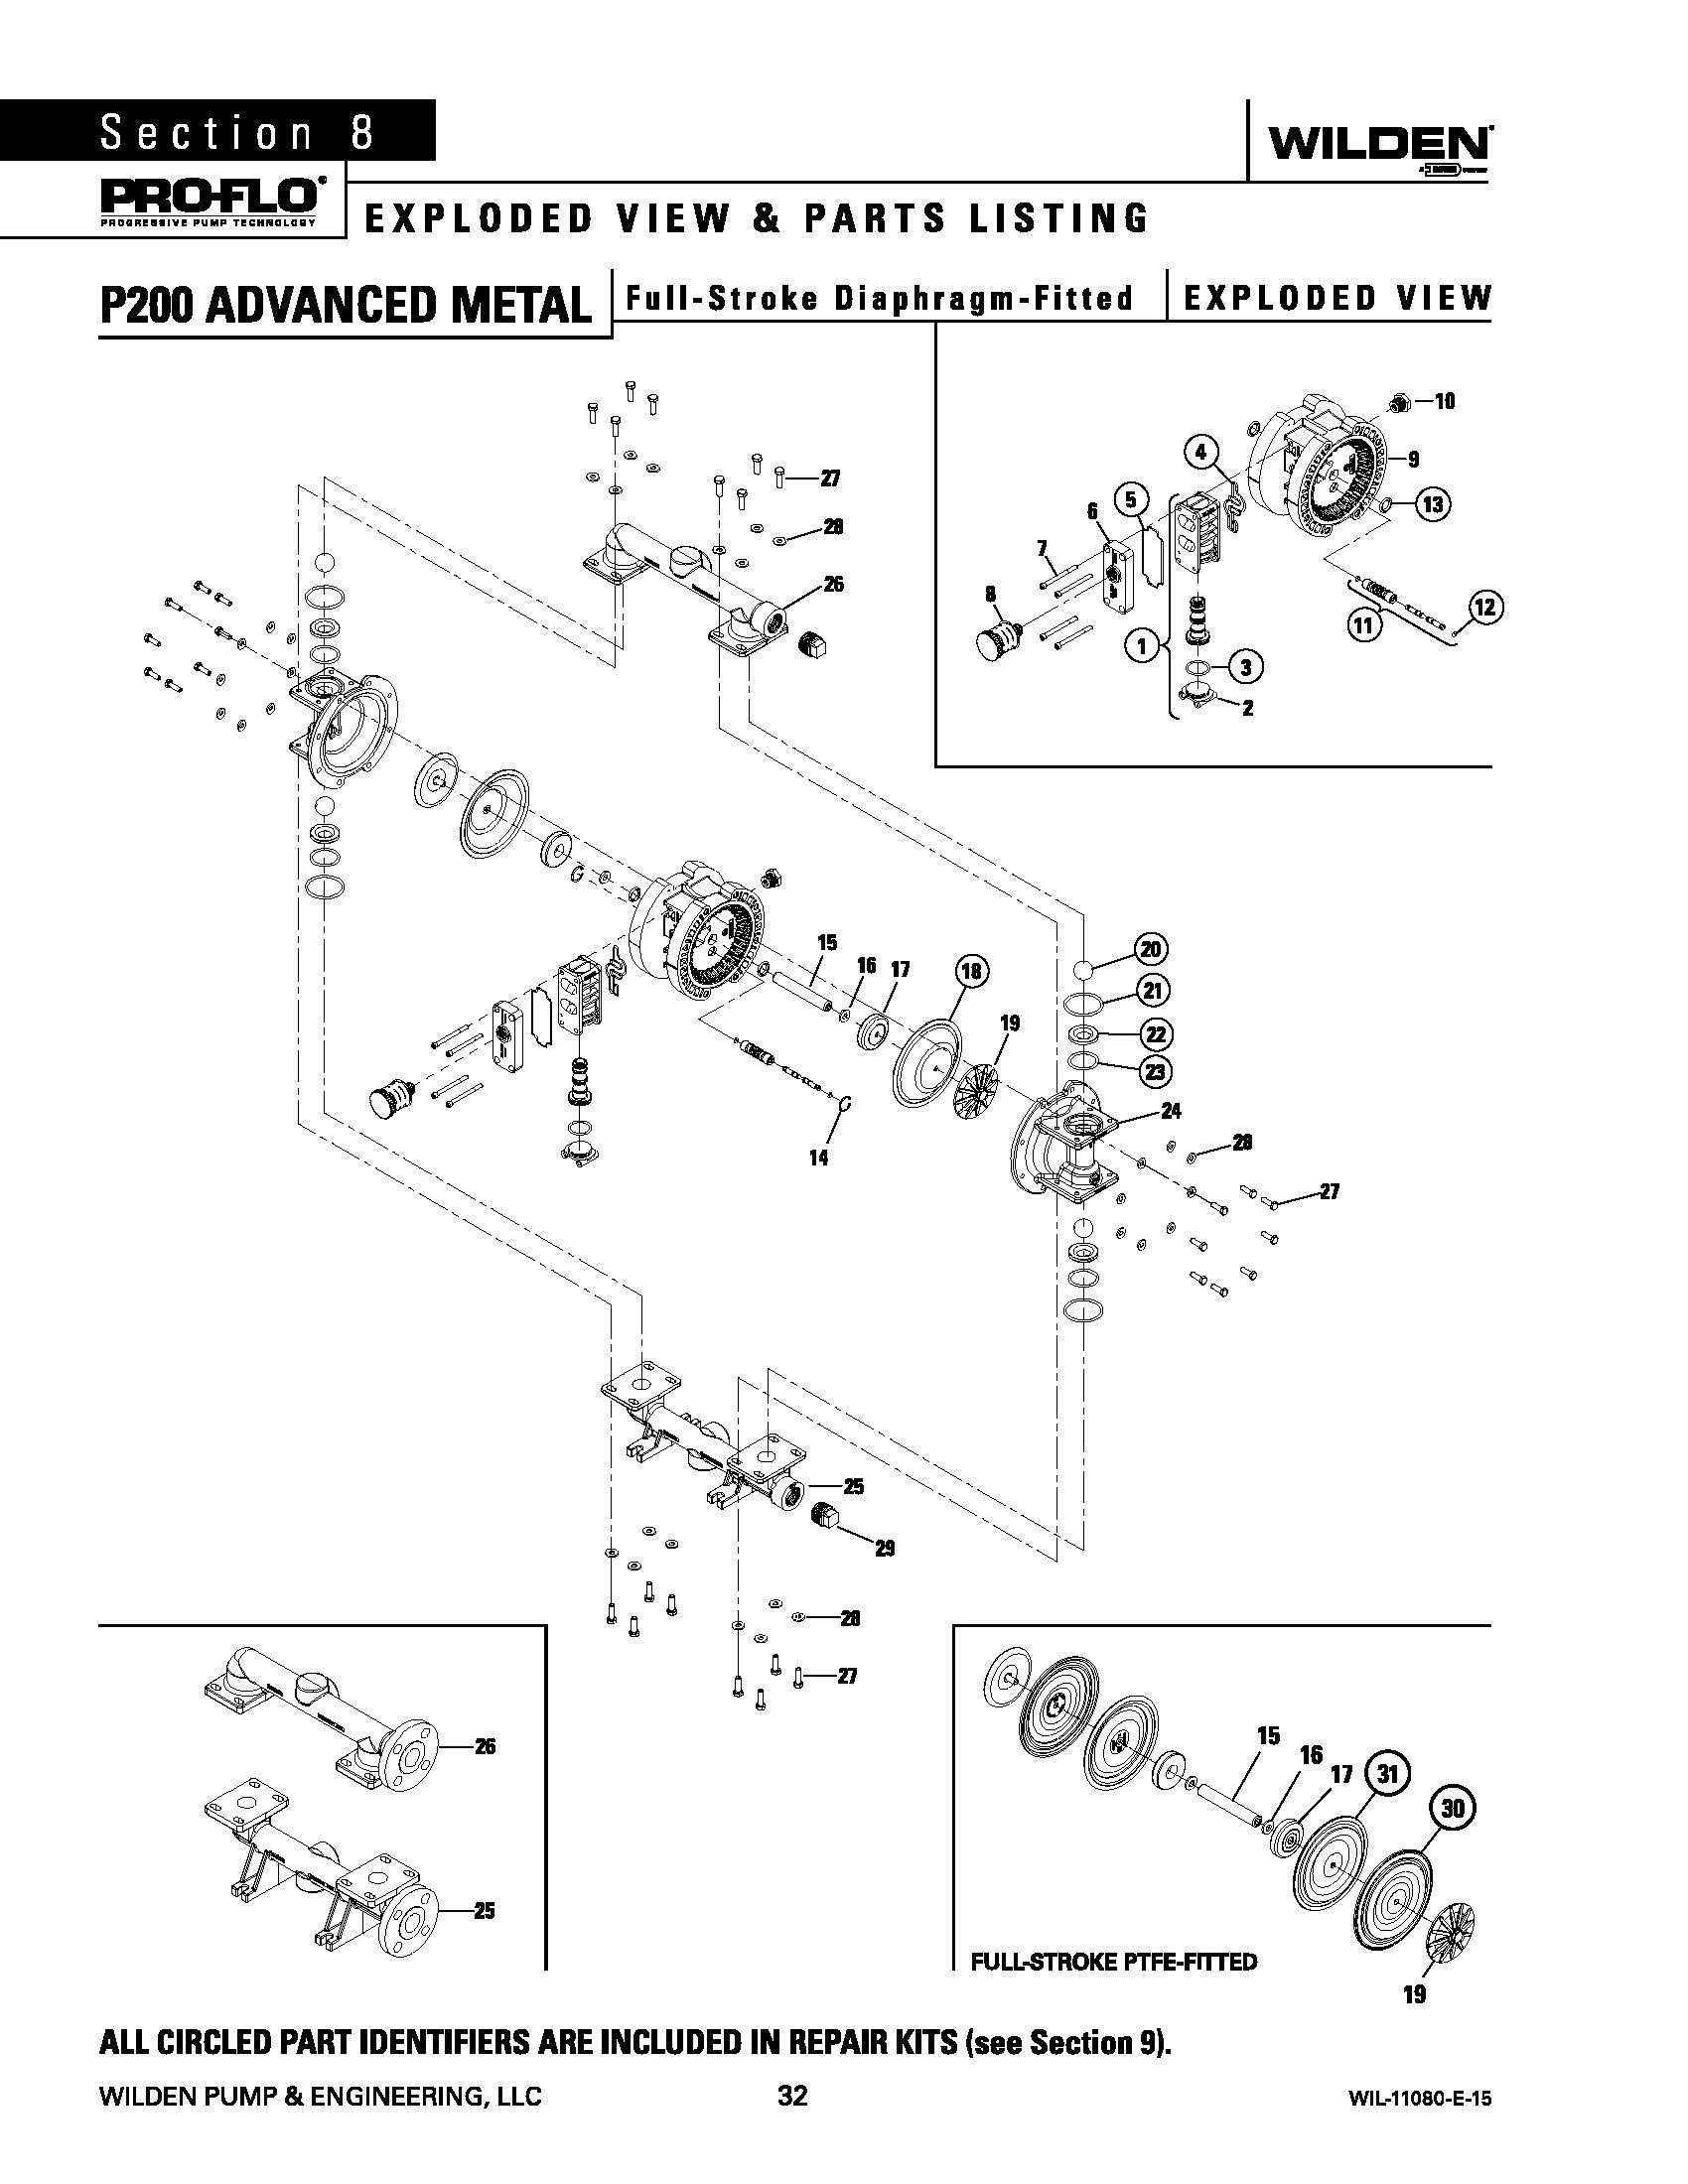 Wilden p200 advanced metal full stroke parts listing pumping wilden p200 advanced metal full stroke exploded view parts listing genuine wilden oem replacement parts and repair kits for wilden pump diaphragm pumps biocorpaavc